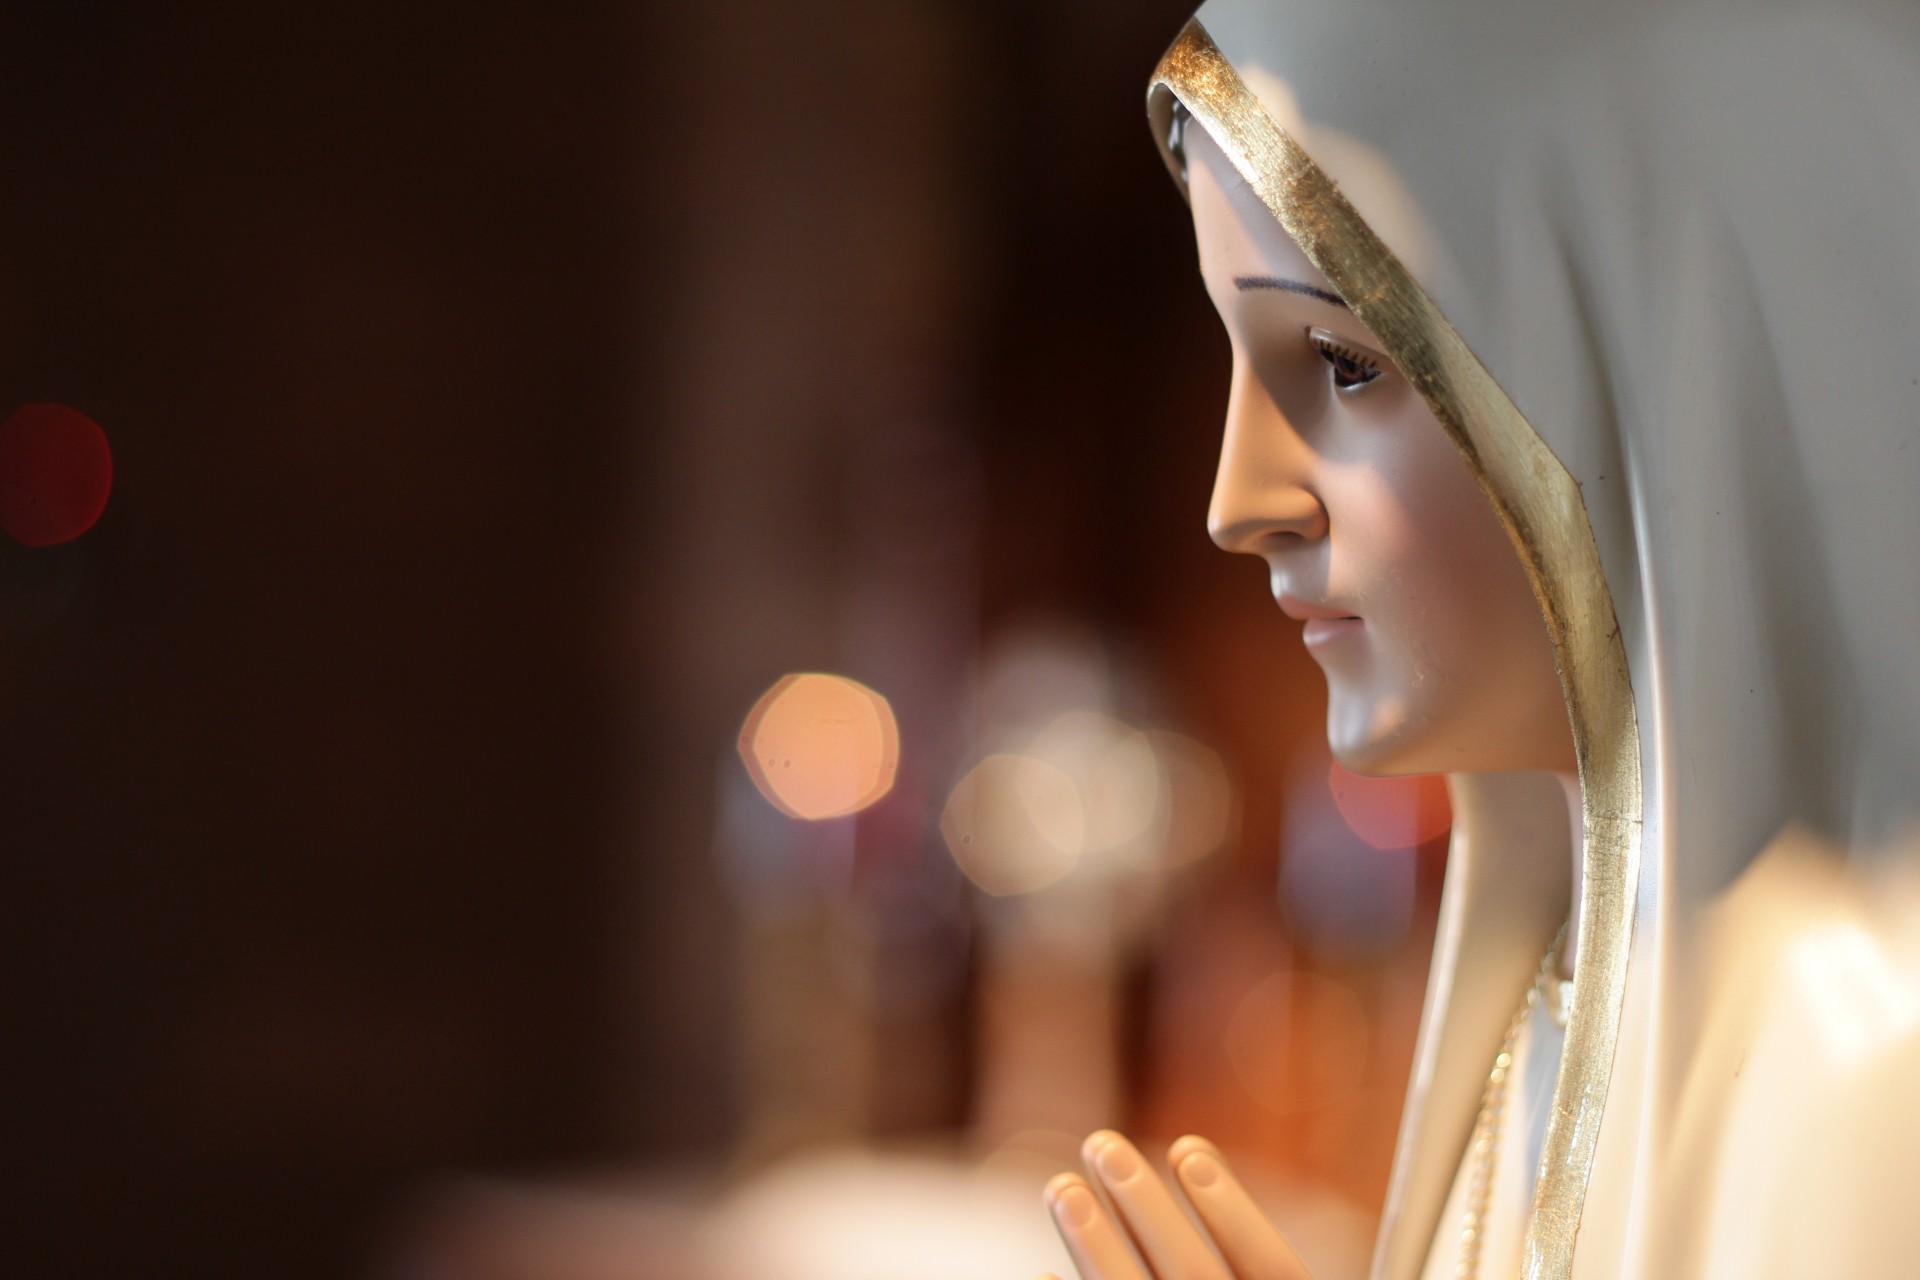 virgin, mother, sea, fatima, mom, marian advocation